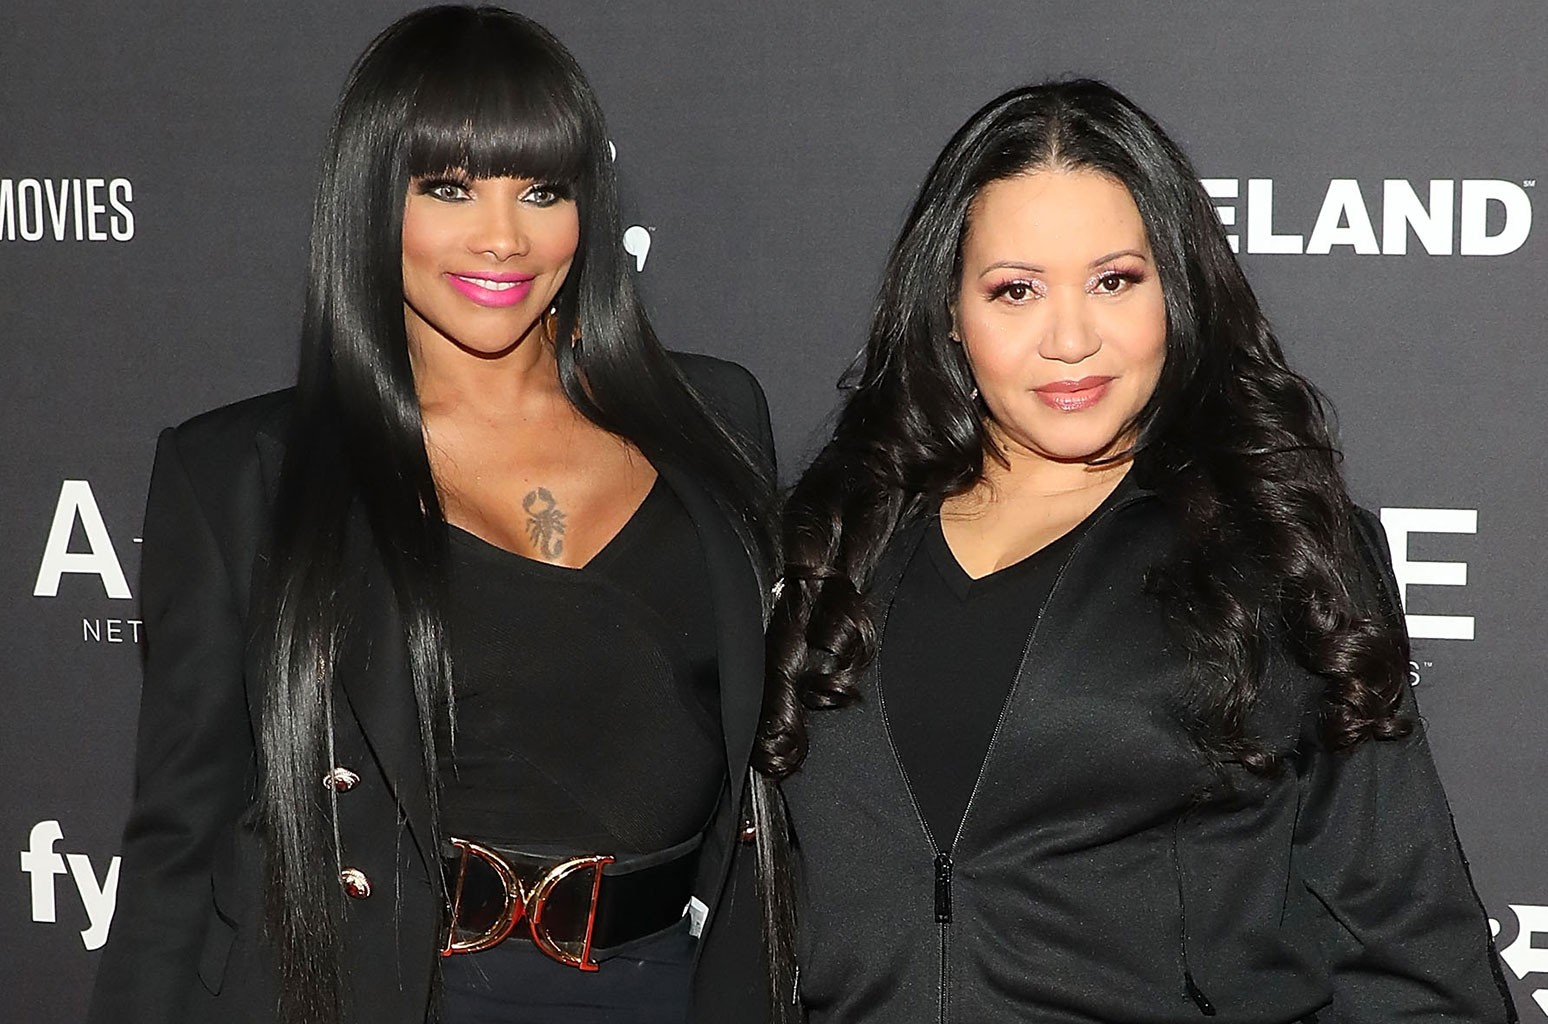 Salt-N-Pepa Show Strength as Women Trailblazers and Friends in New Lifetime Biopic